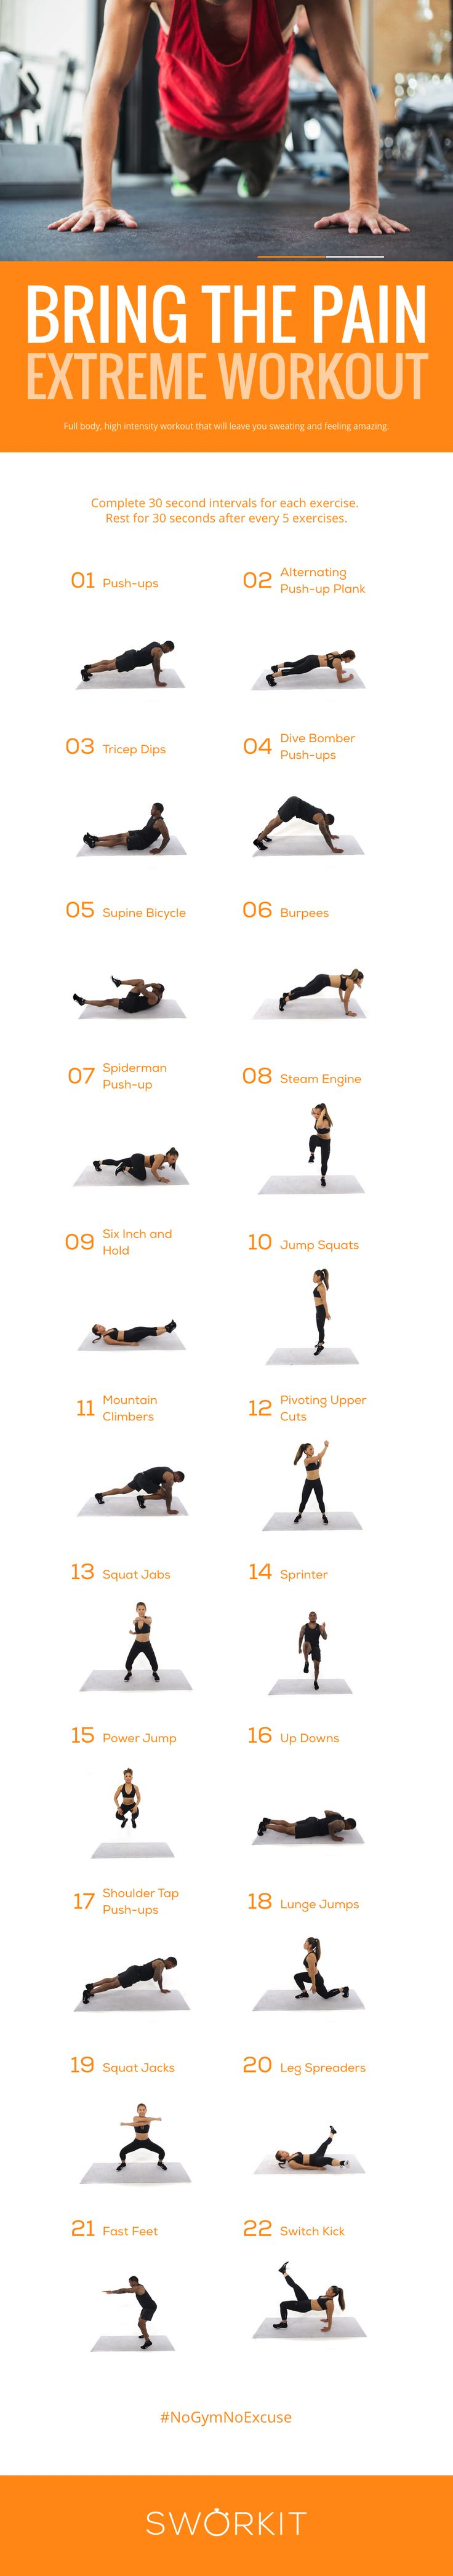 Bring on the Pain with this extreme custom workout for Sworkit for iOS and Android. If you have the Sworkit app, you can import this workout directly into the app: http://yogisurprise.com/pinterest